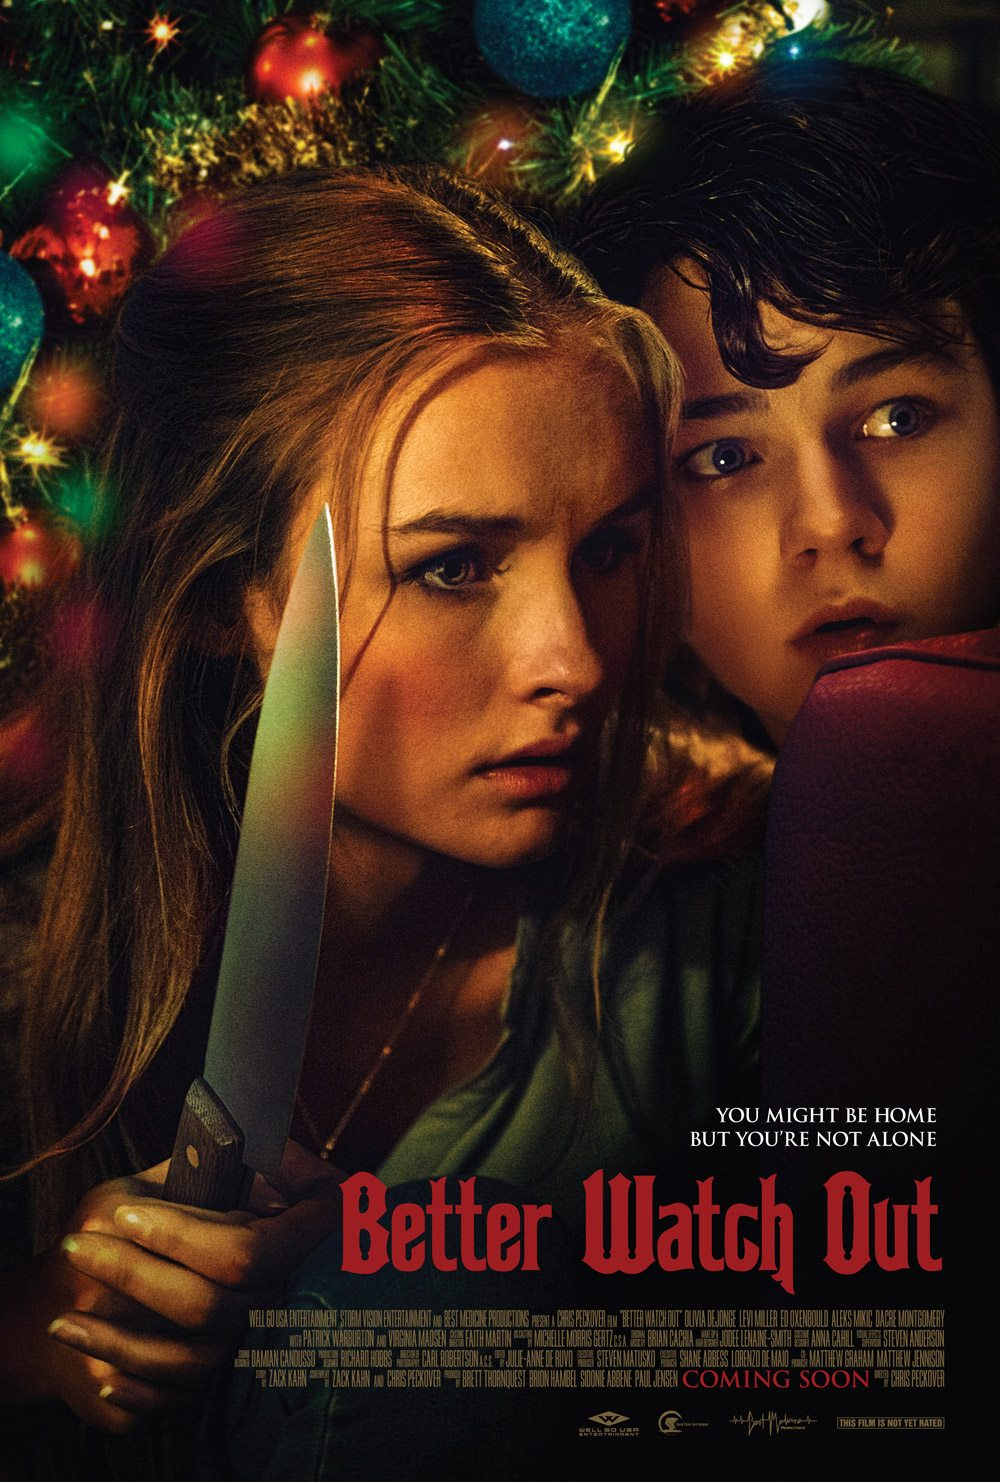 better watch out - You Better Watch Out for this Green Band Trailer!